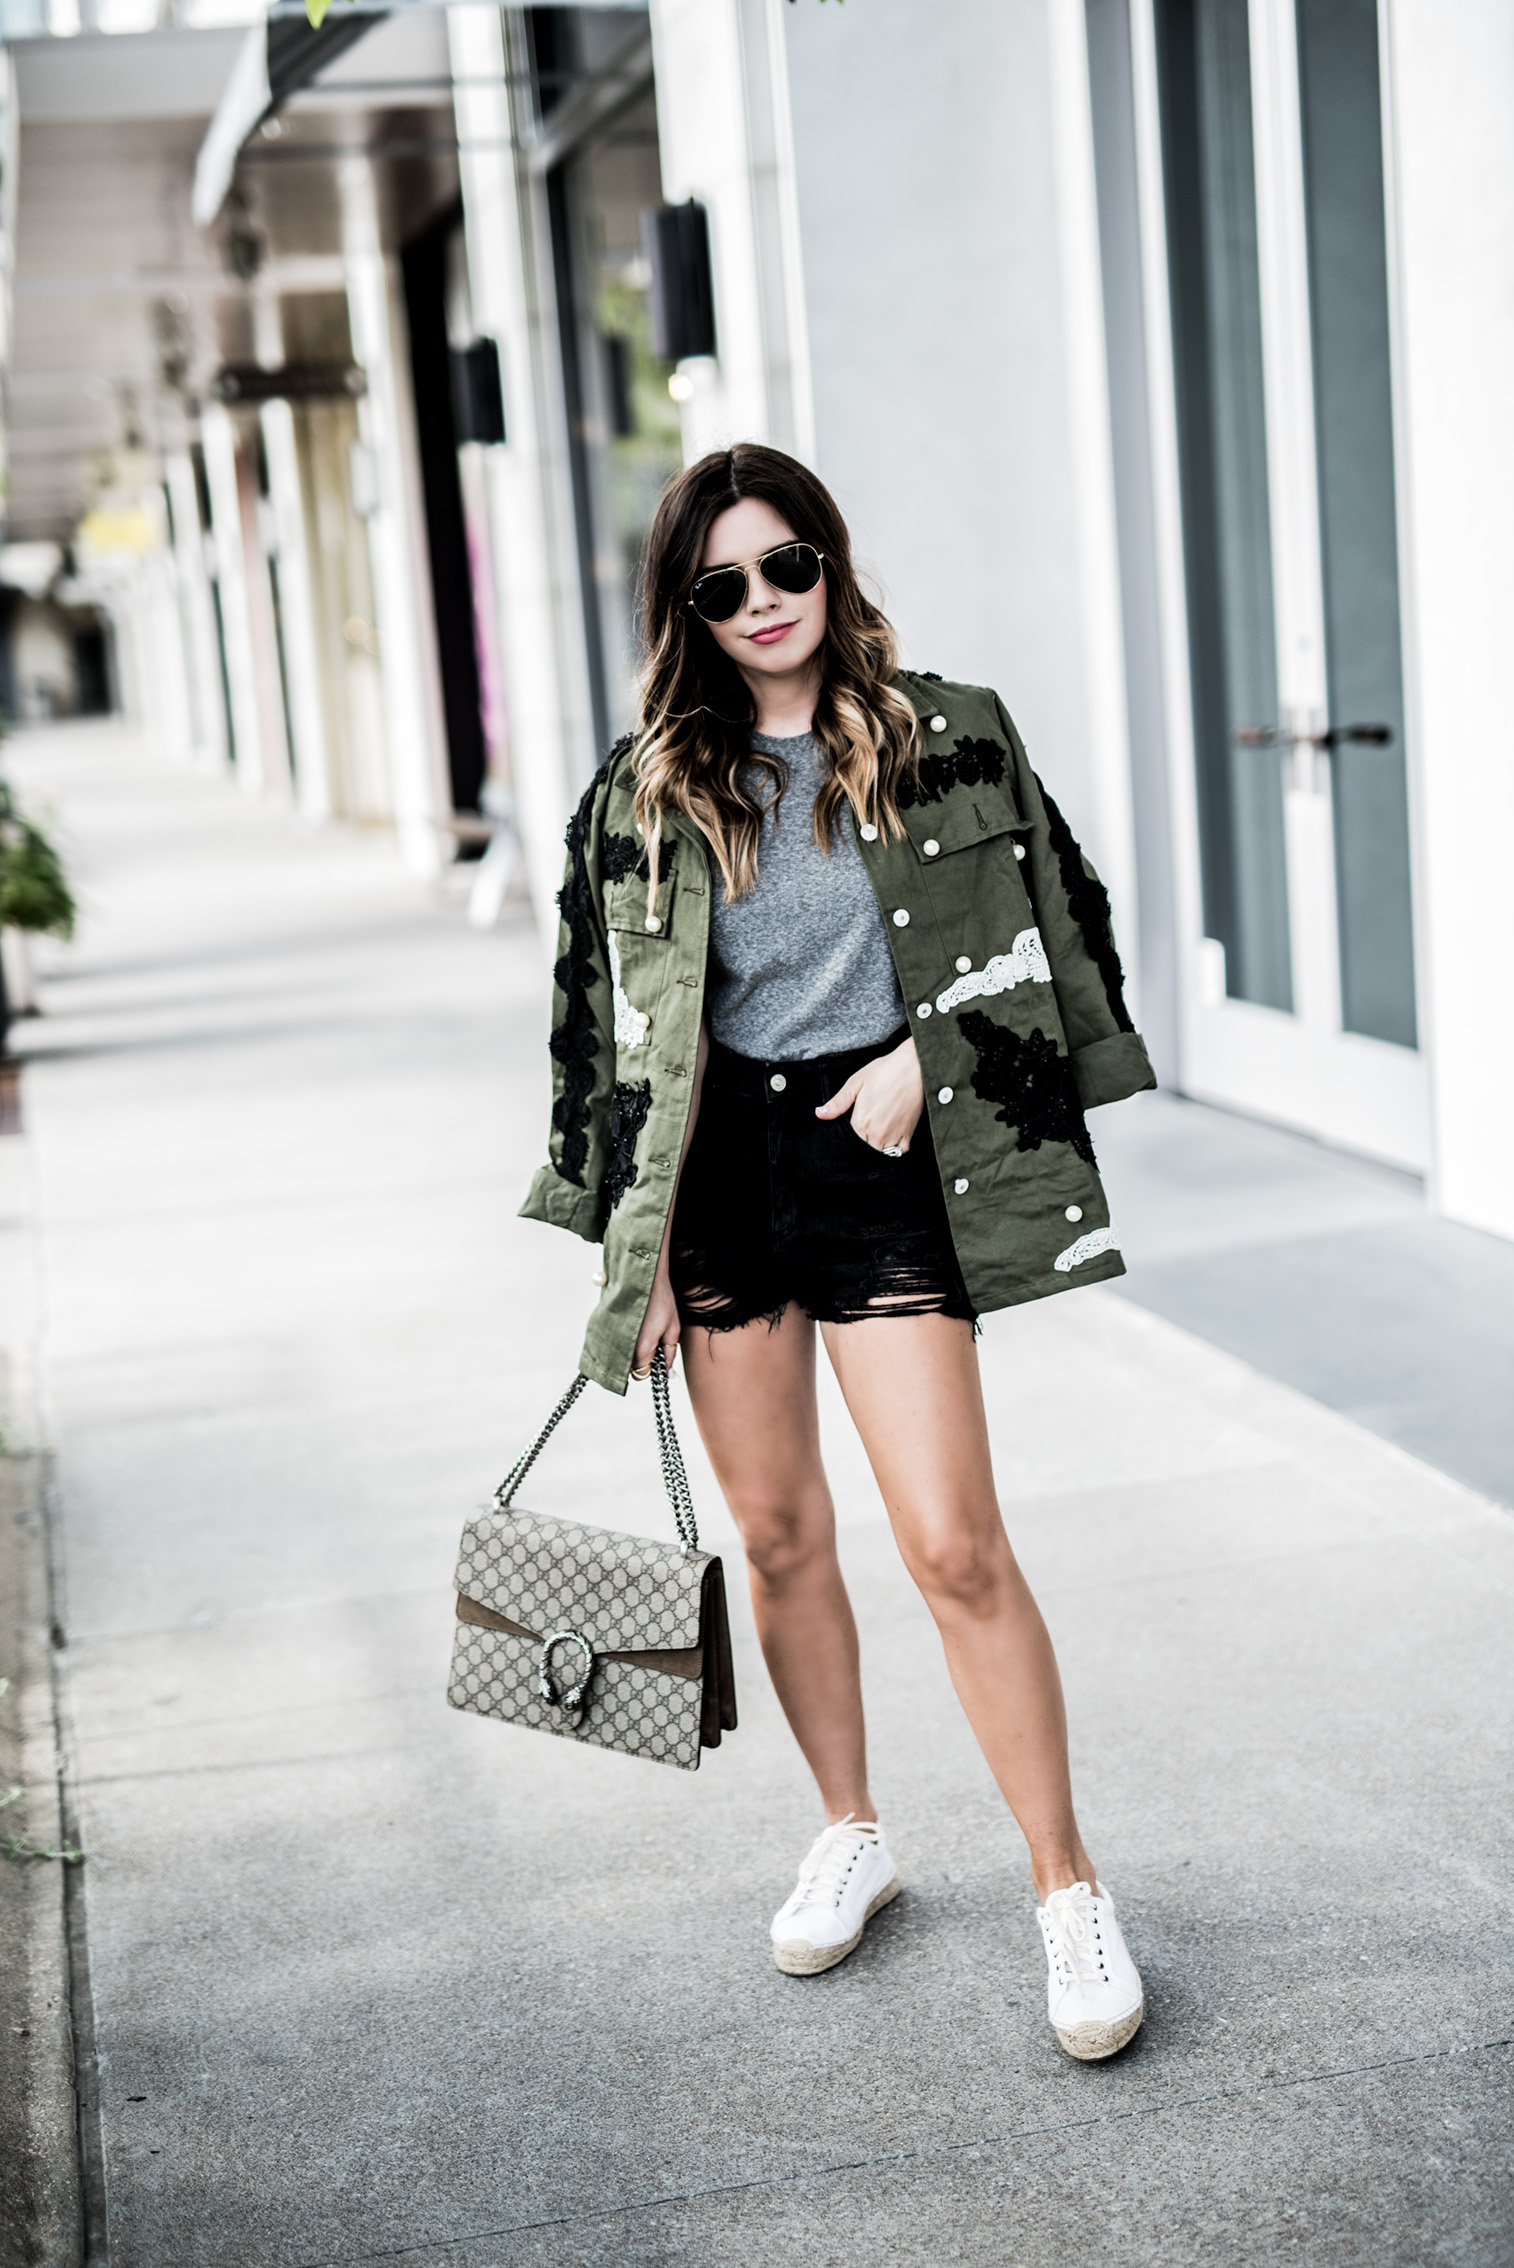 Tiffany Jais Houston fashion and lifestyle blogger | How to wear this springs embellished trend, pearl embellished jacket, cutoff black denim shorts, white platform sneakers, spring outfit ideas 2017, summer streetstyle 2017, Gucci Dionysus bag